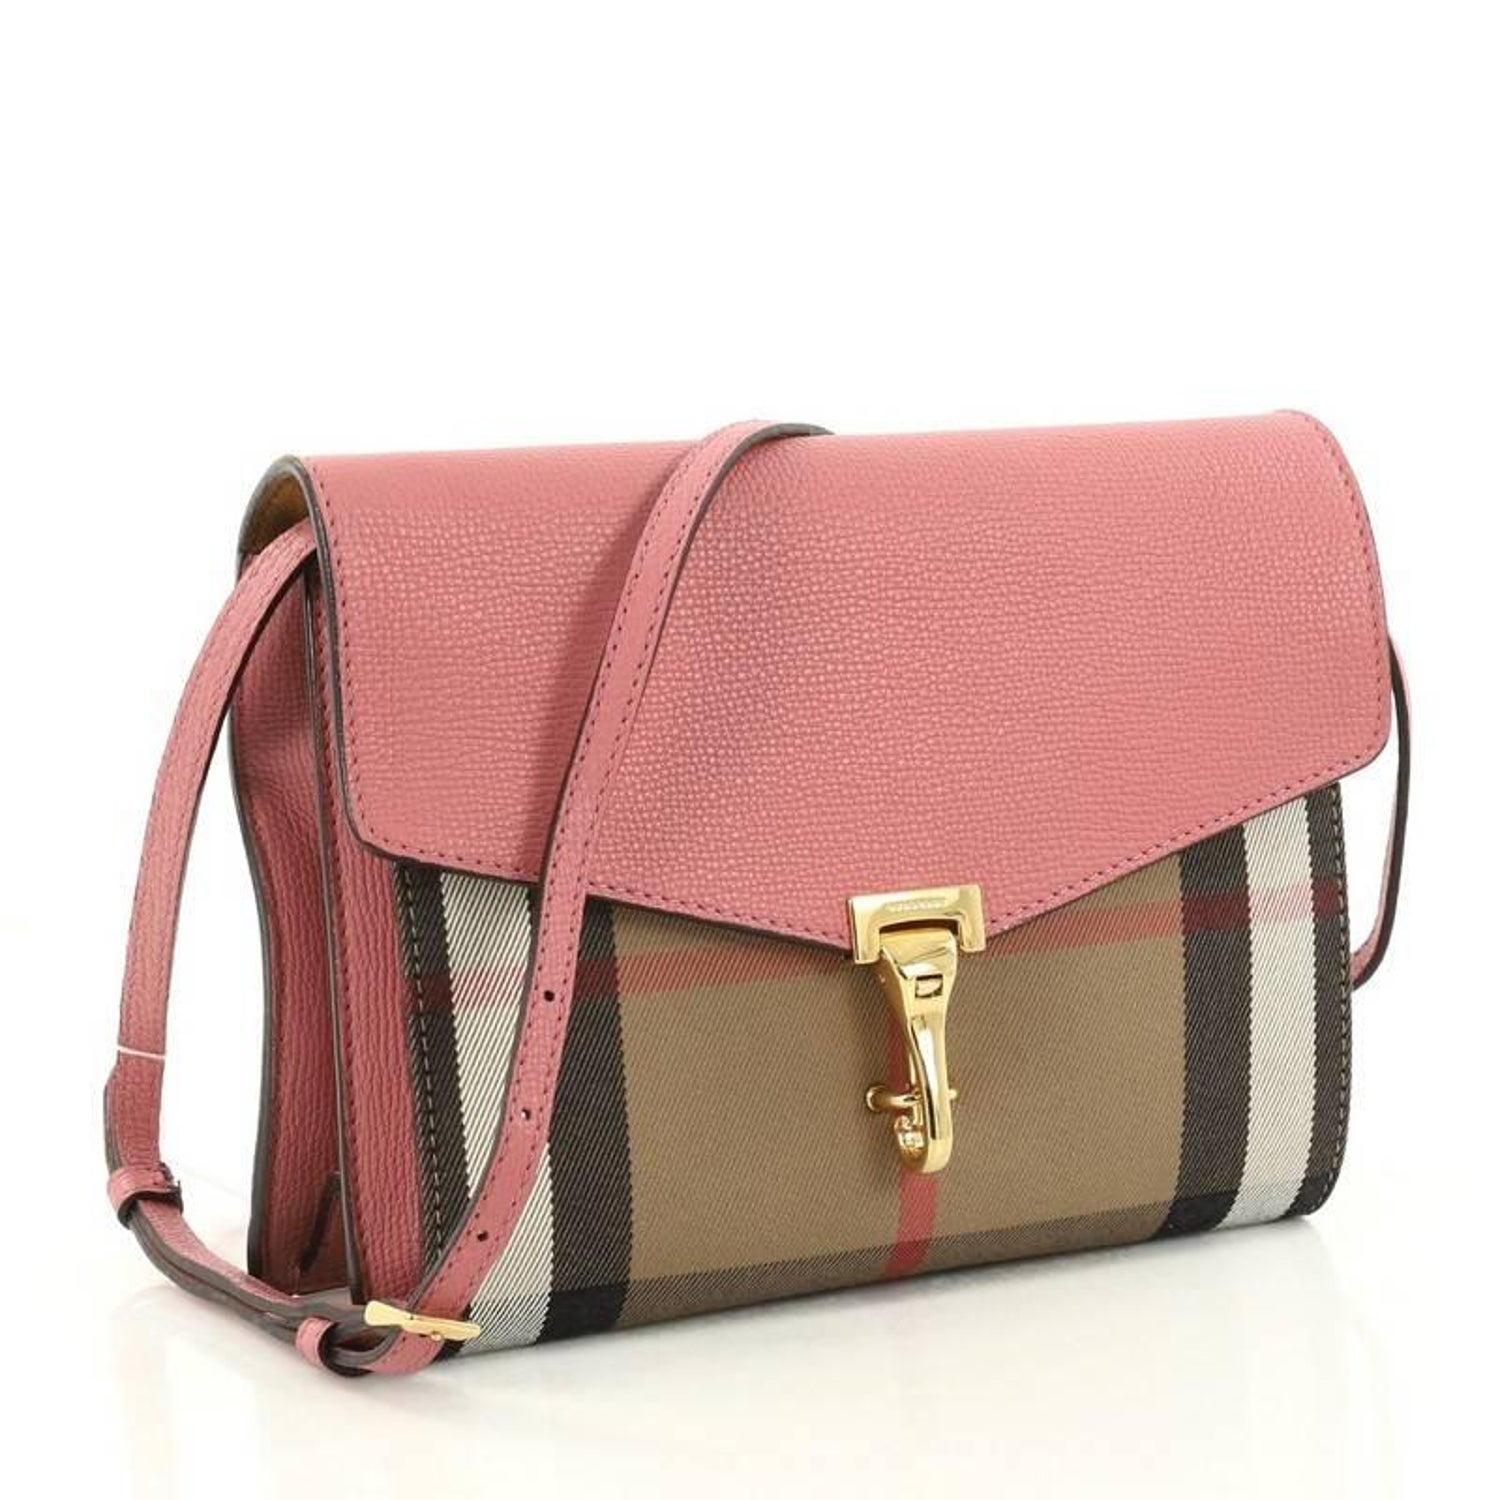 d0d59229b6a9 Burberry Macken Crossbody Bag Leather and House Check Canvas Small at  1stdibs